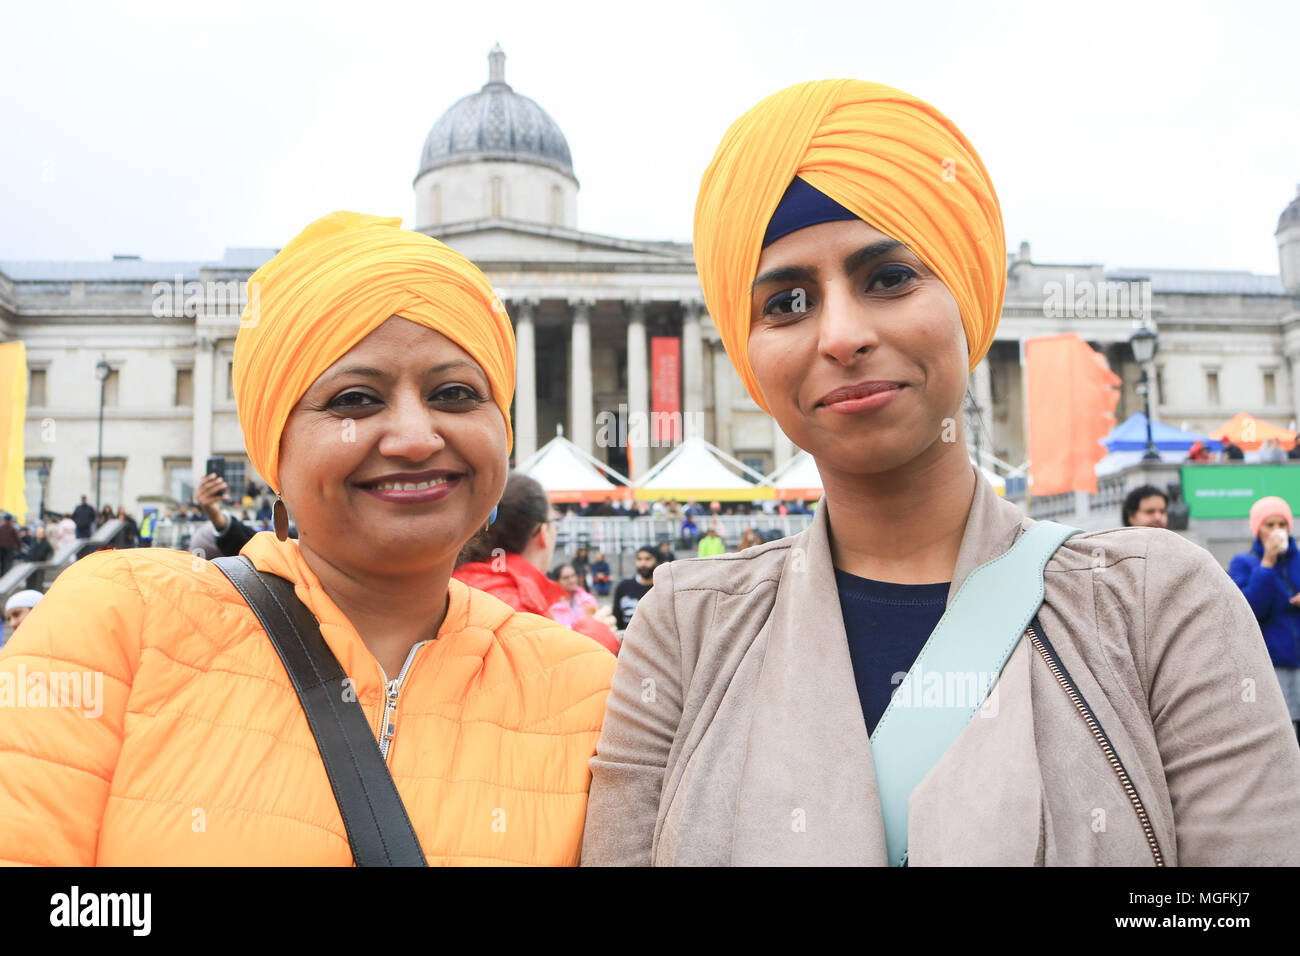 London UK. 28th April 2018. Punjabi women wearing turbans  attend the Vaisakhi festival in Trafalgar Square which is hosted by the Mayor of London as  a celebration of Sikh and Punjabi tradition, heritage and culture Credit: amer ghazzal/Alamy Live News Stock Photo